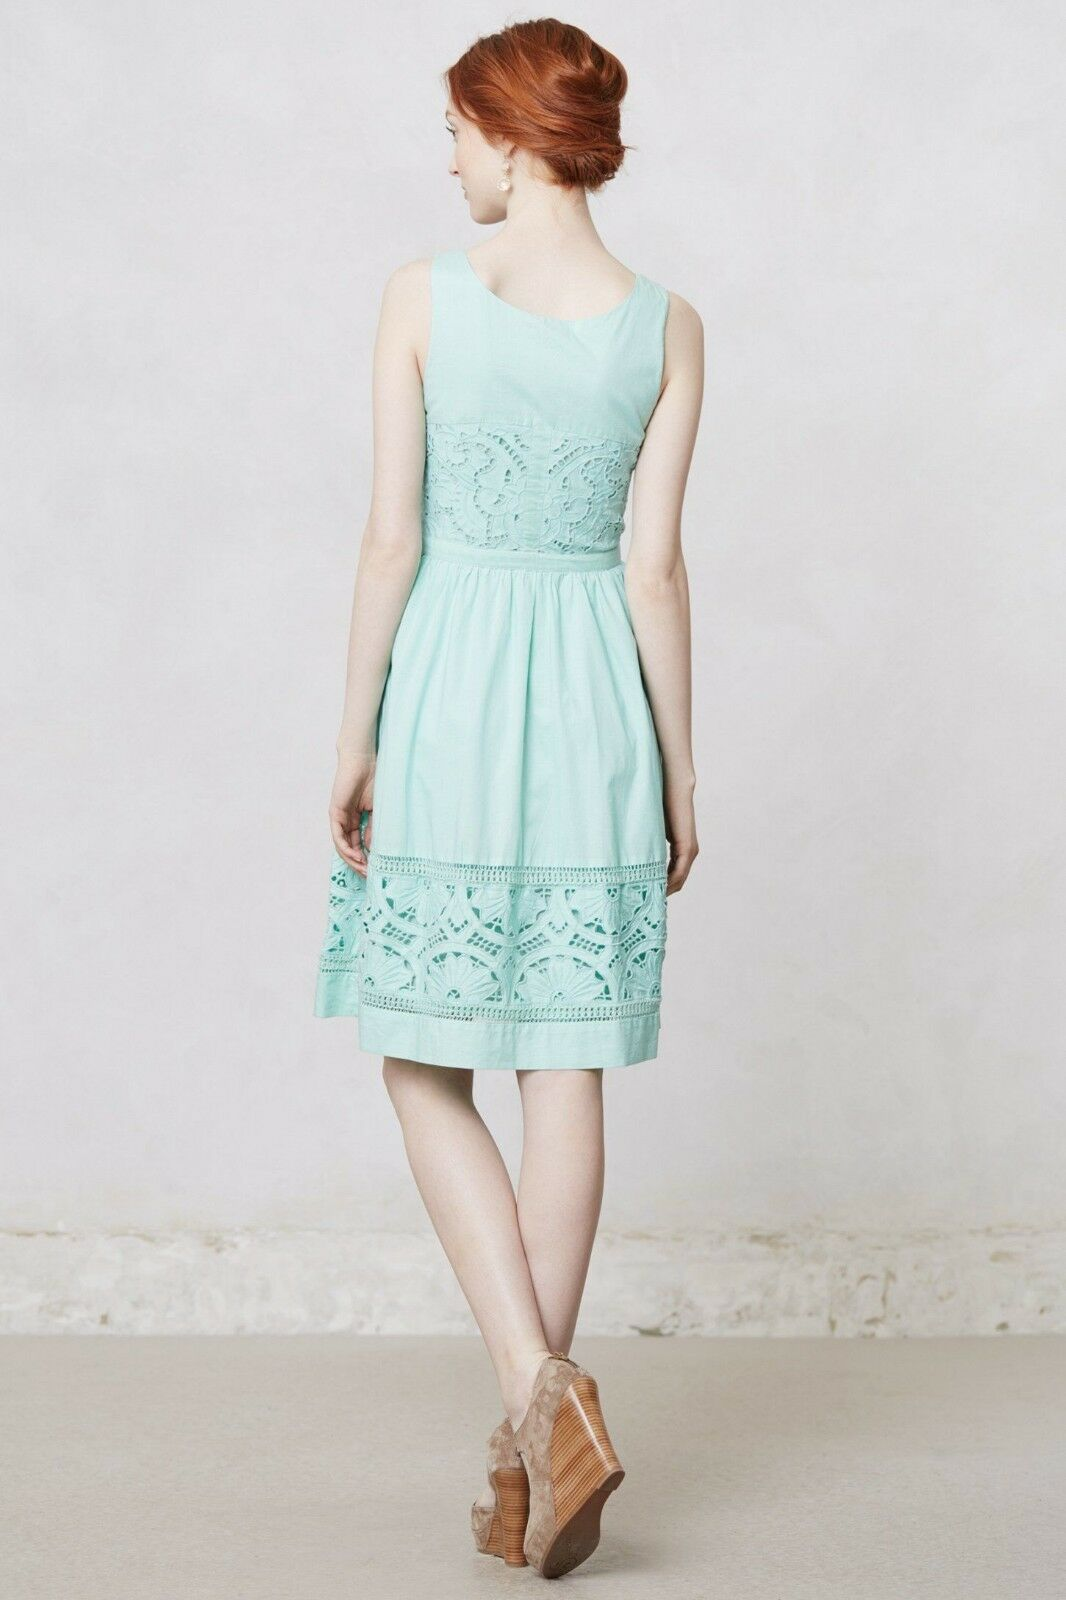 Anthropologie Meadow Rue BottleGrün Dress Mint Turquoise Crochet Floral Größe 0